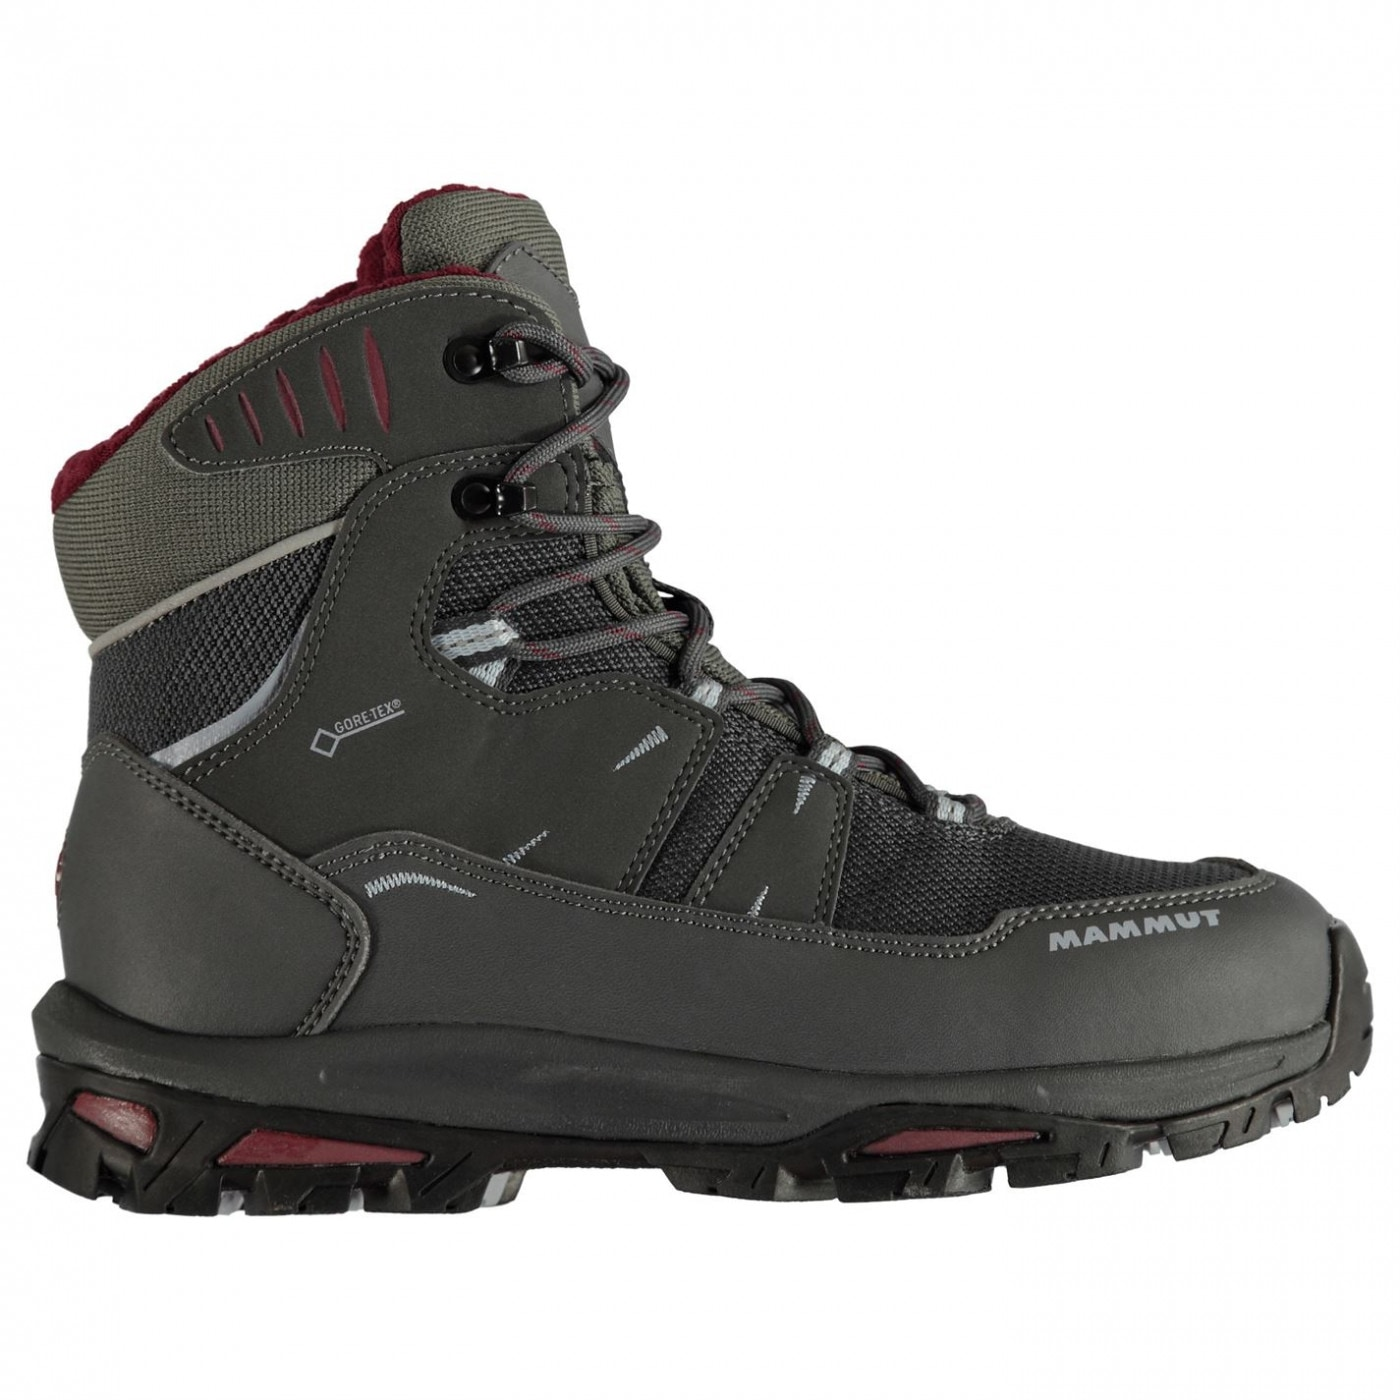 Mammut Runbold GTX Ladies Walking Boots